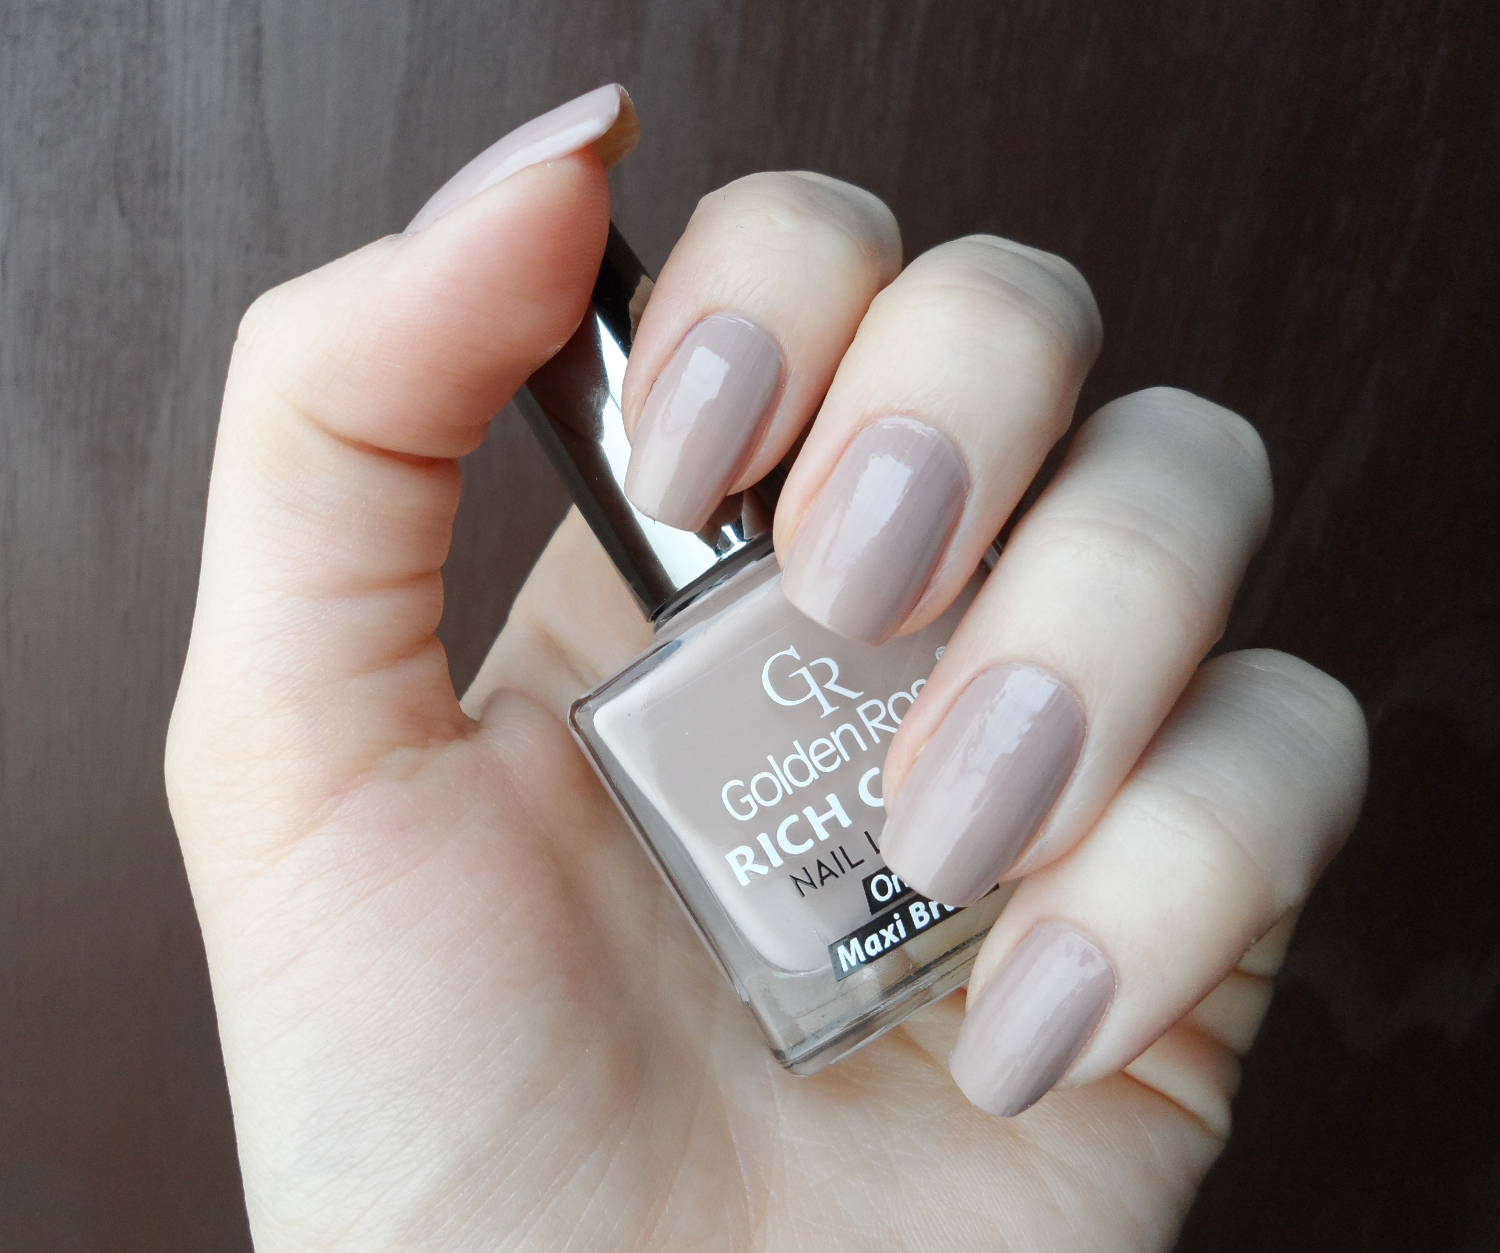 Rich Color Nail Lacquer By Golden Rose  Review  Swatches-2548